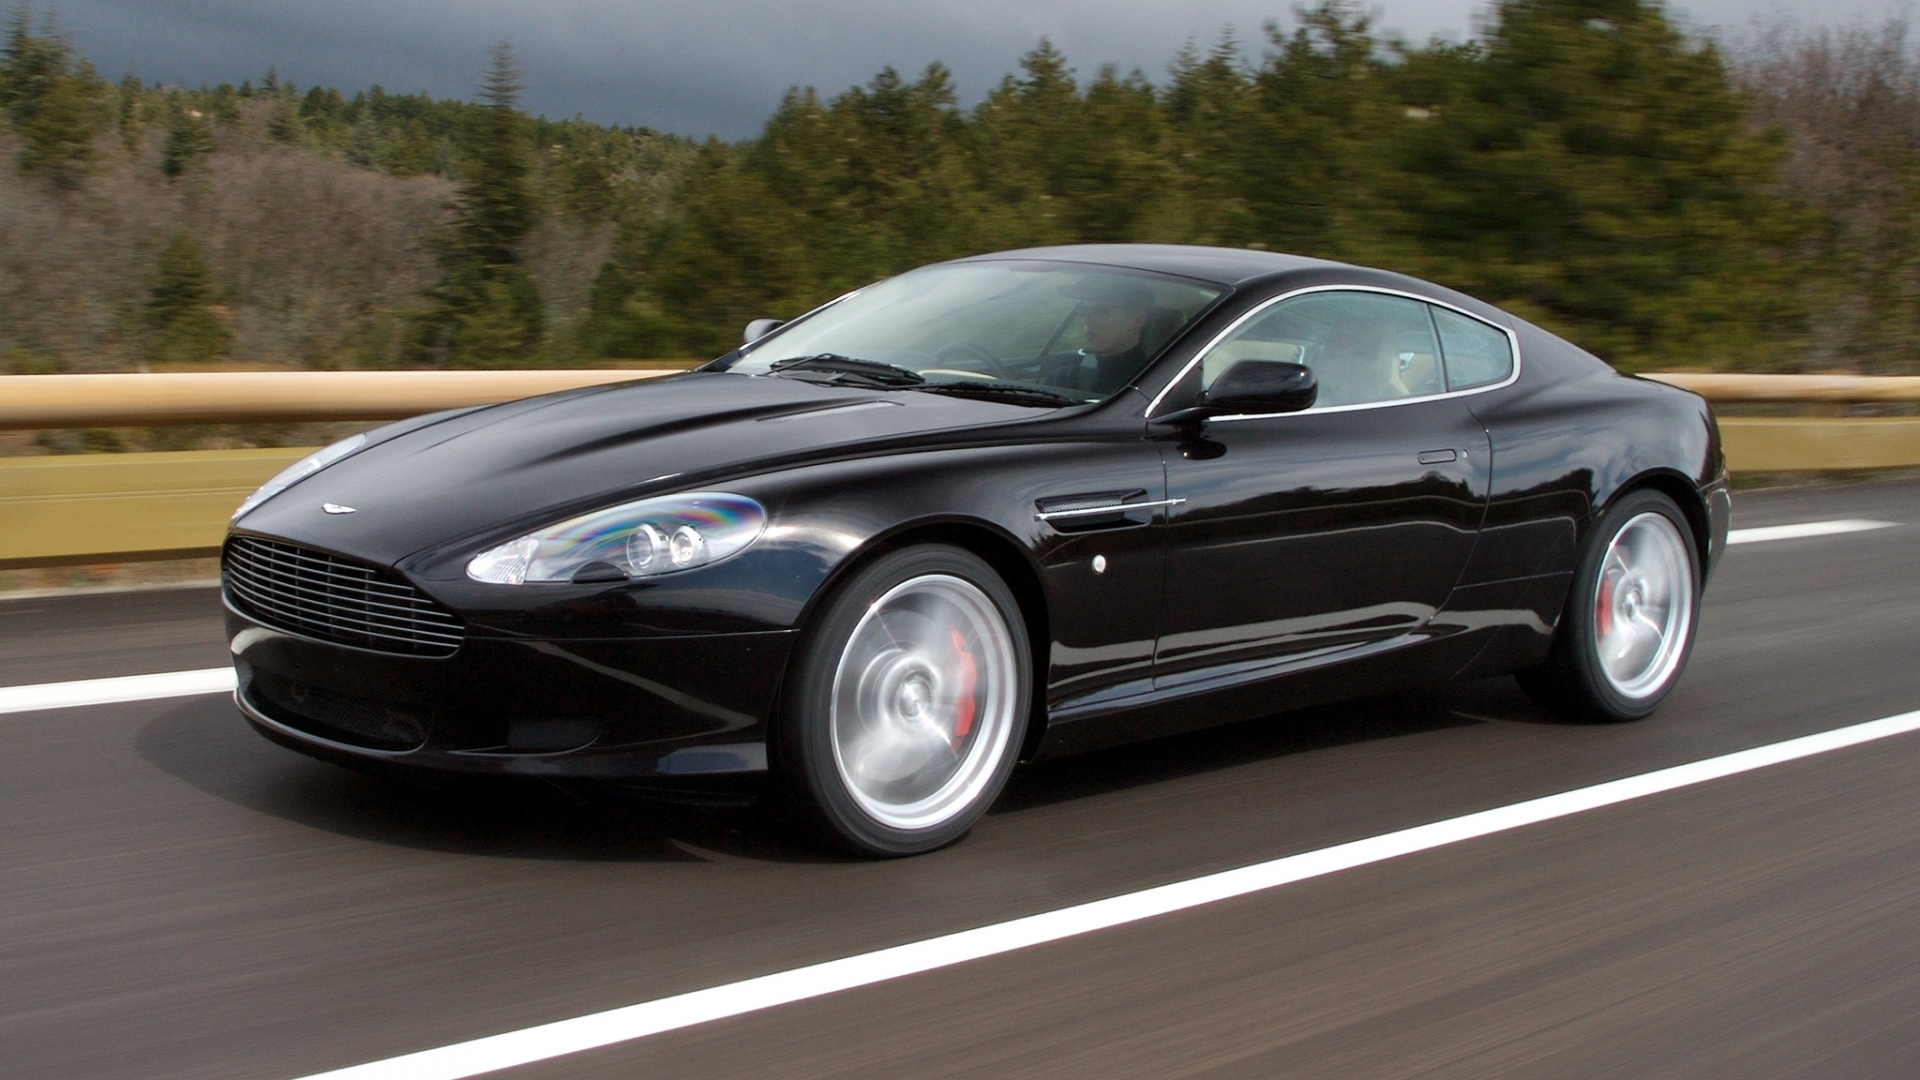 Download Aston Martin Vanquish HD Picture Wallpaper 1920x1080